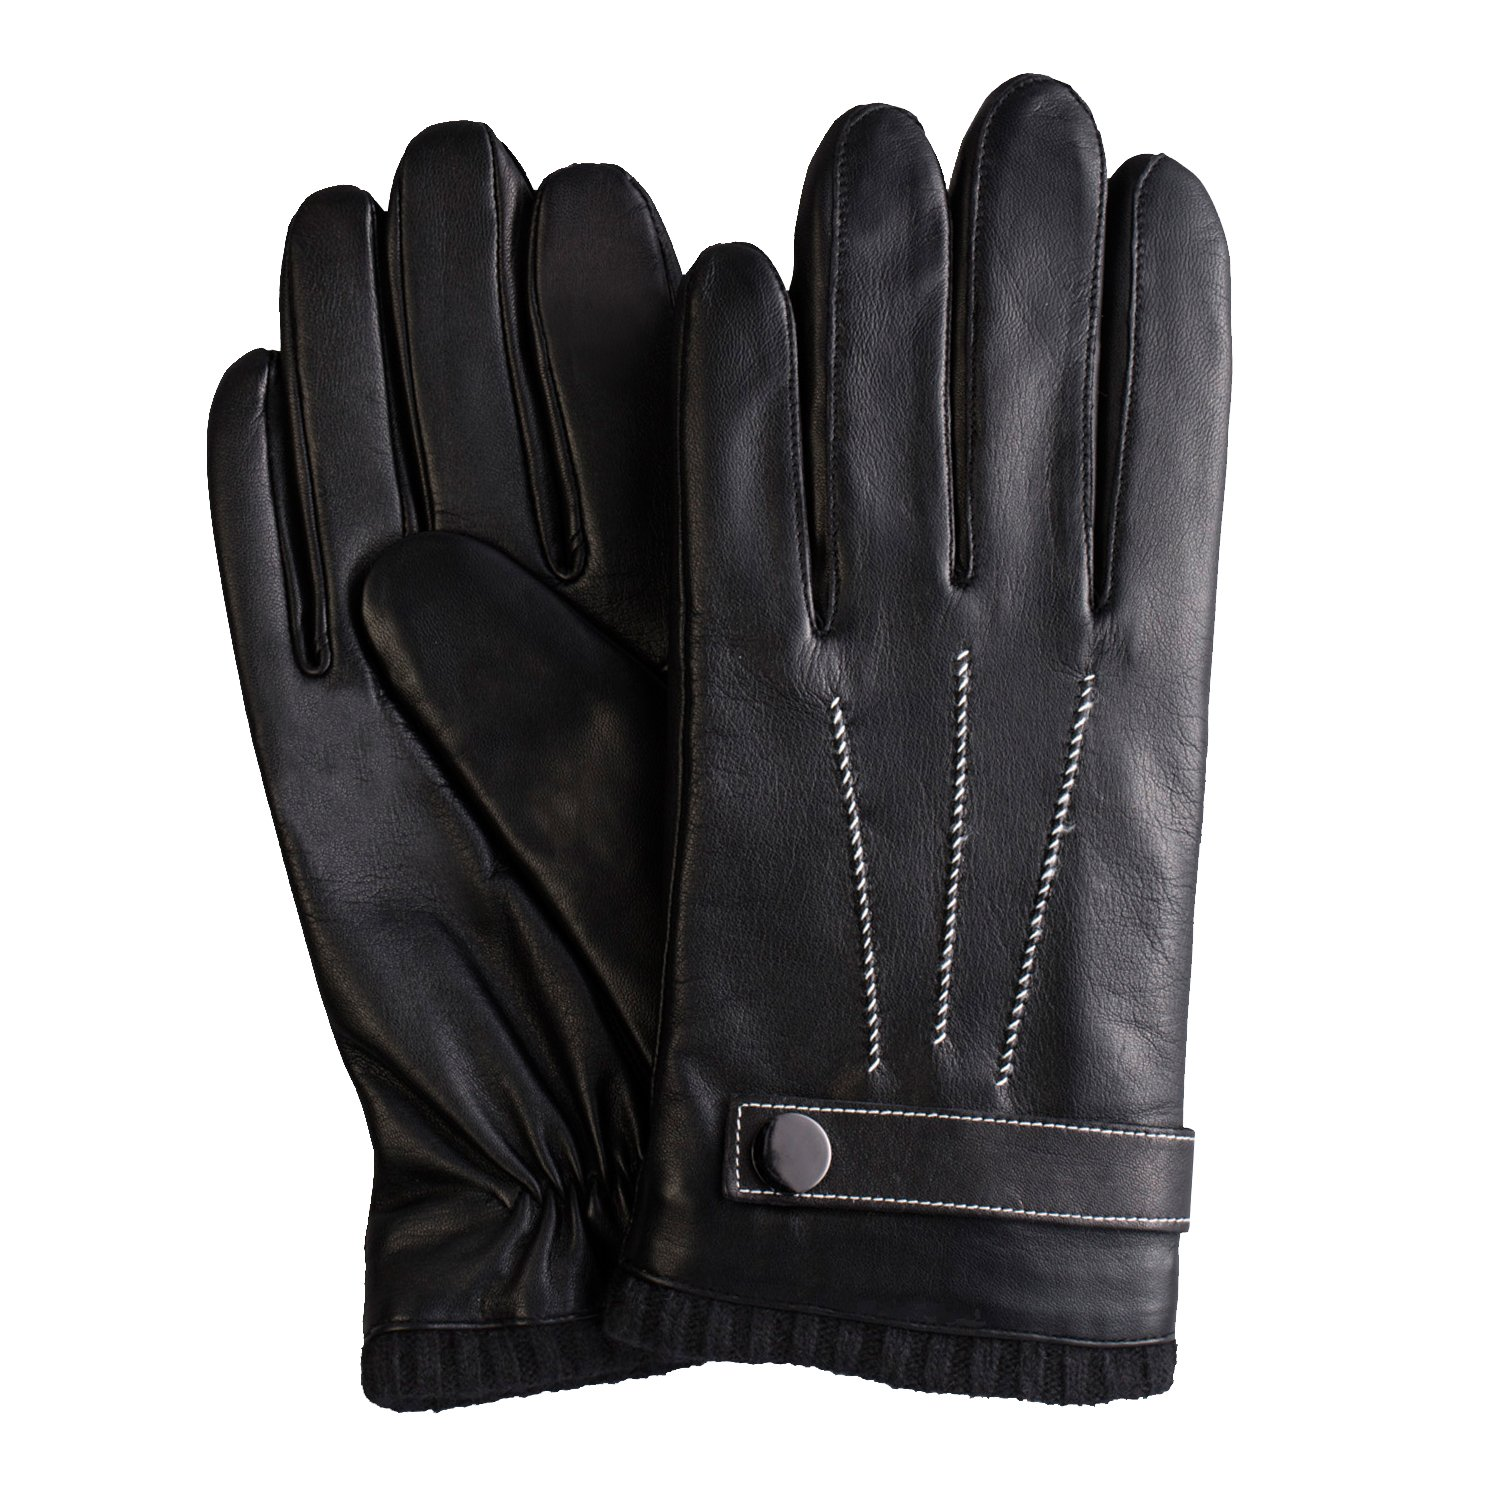 Vw leather driving gloves - Amazon Com Gsg Mens Luxury Genuine Nappa Leather Gloves Hi Tech Touchscreen Driving Gloves Father S Day Surprise Clothing